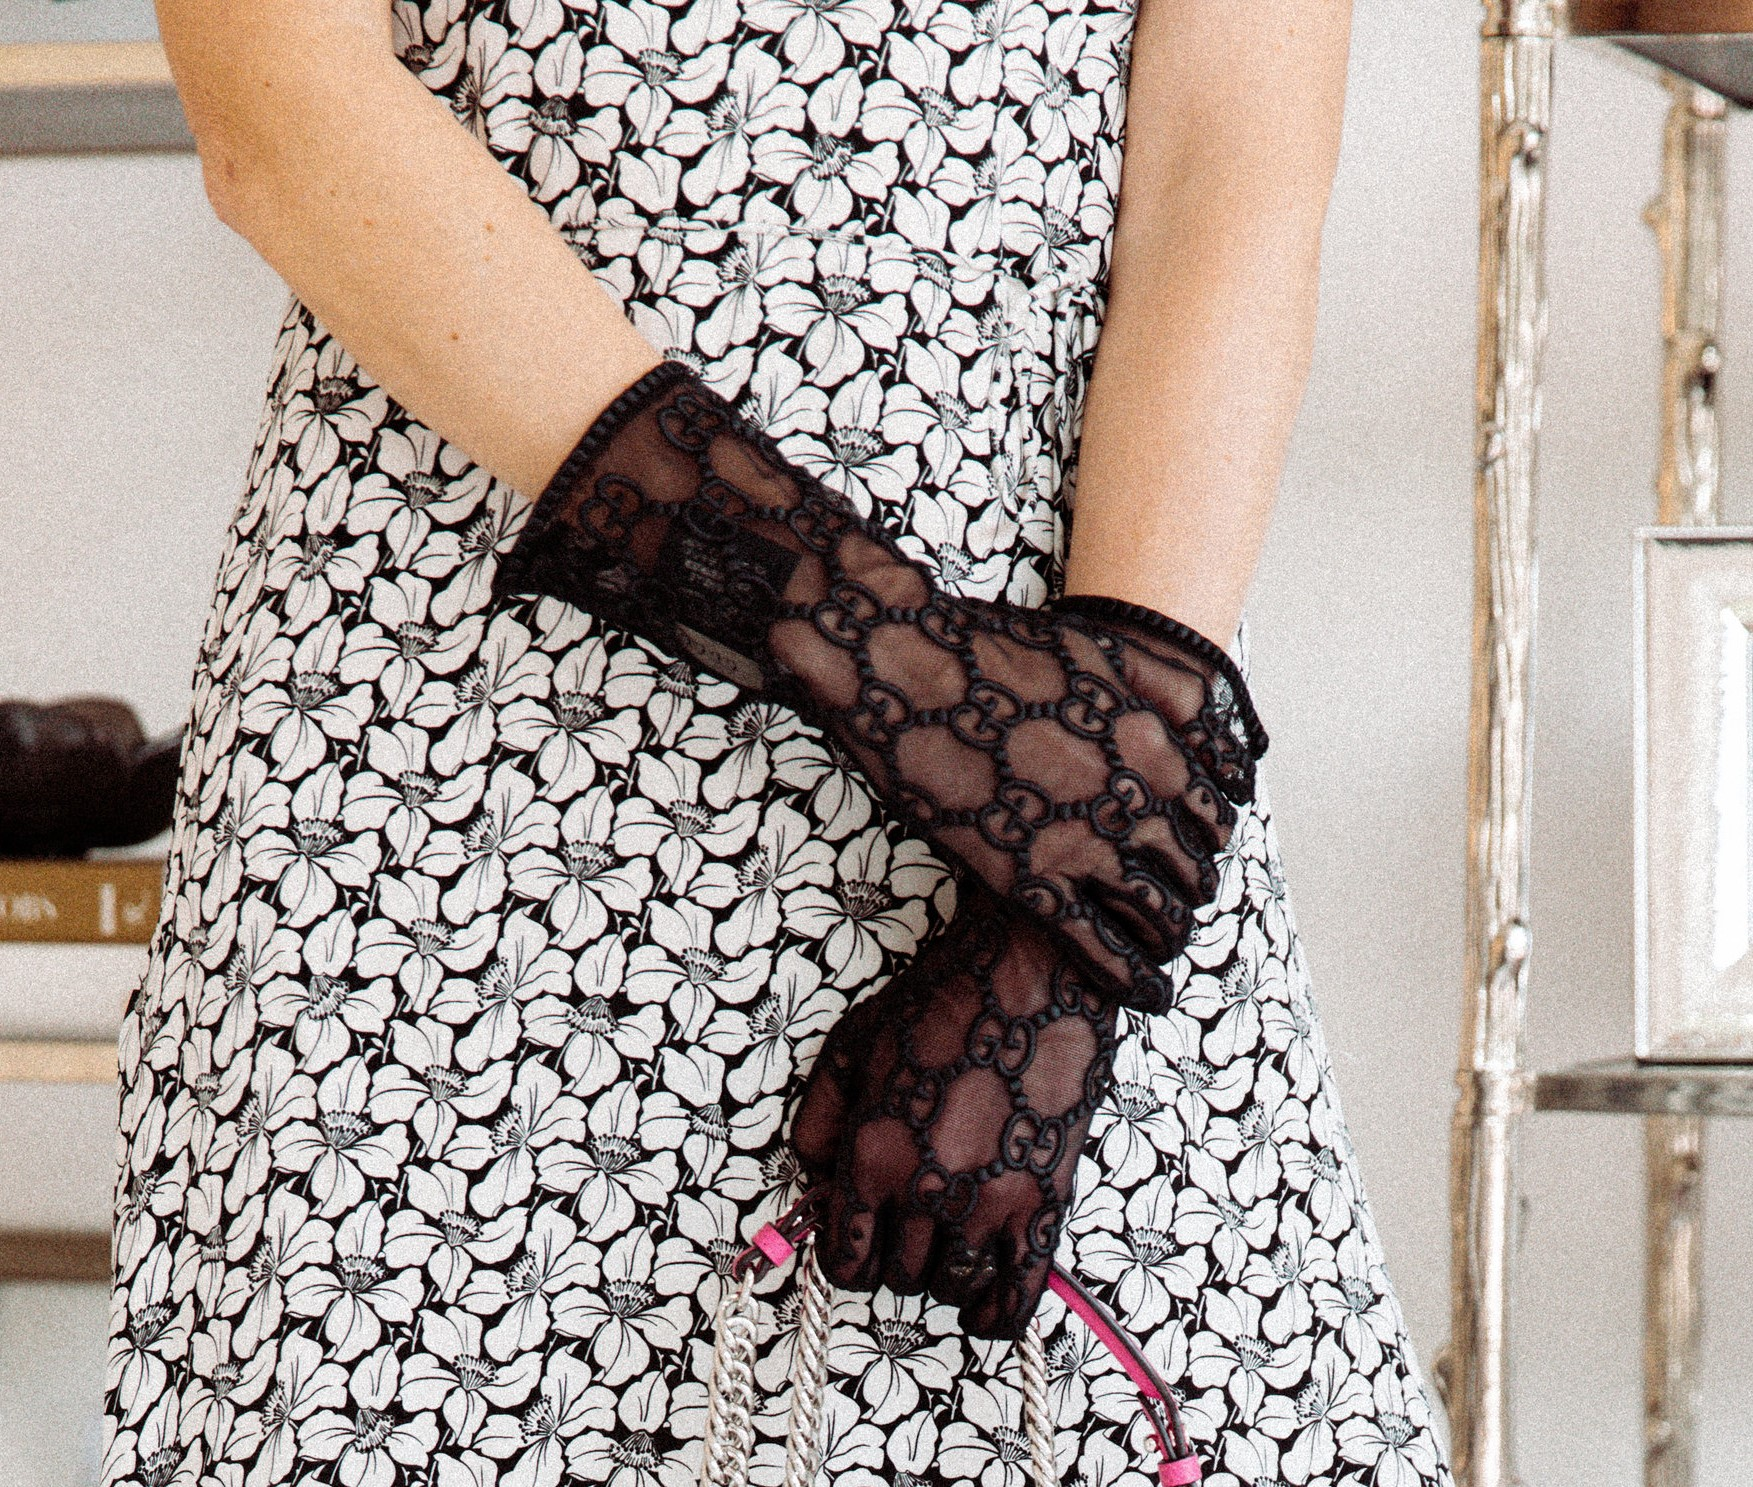 Make a statement this spring and embrace the glove trend.  Stylish gloves are the go-to accessory as 2018 melts into 2019. Learn how the delicate, lacey digits can add an iconic feel to your look.